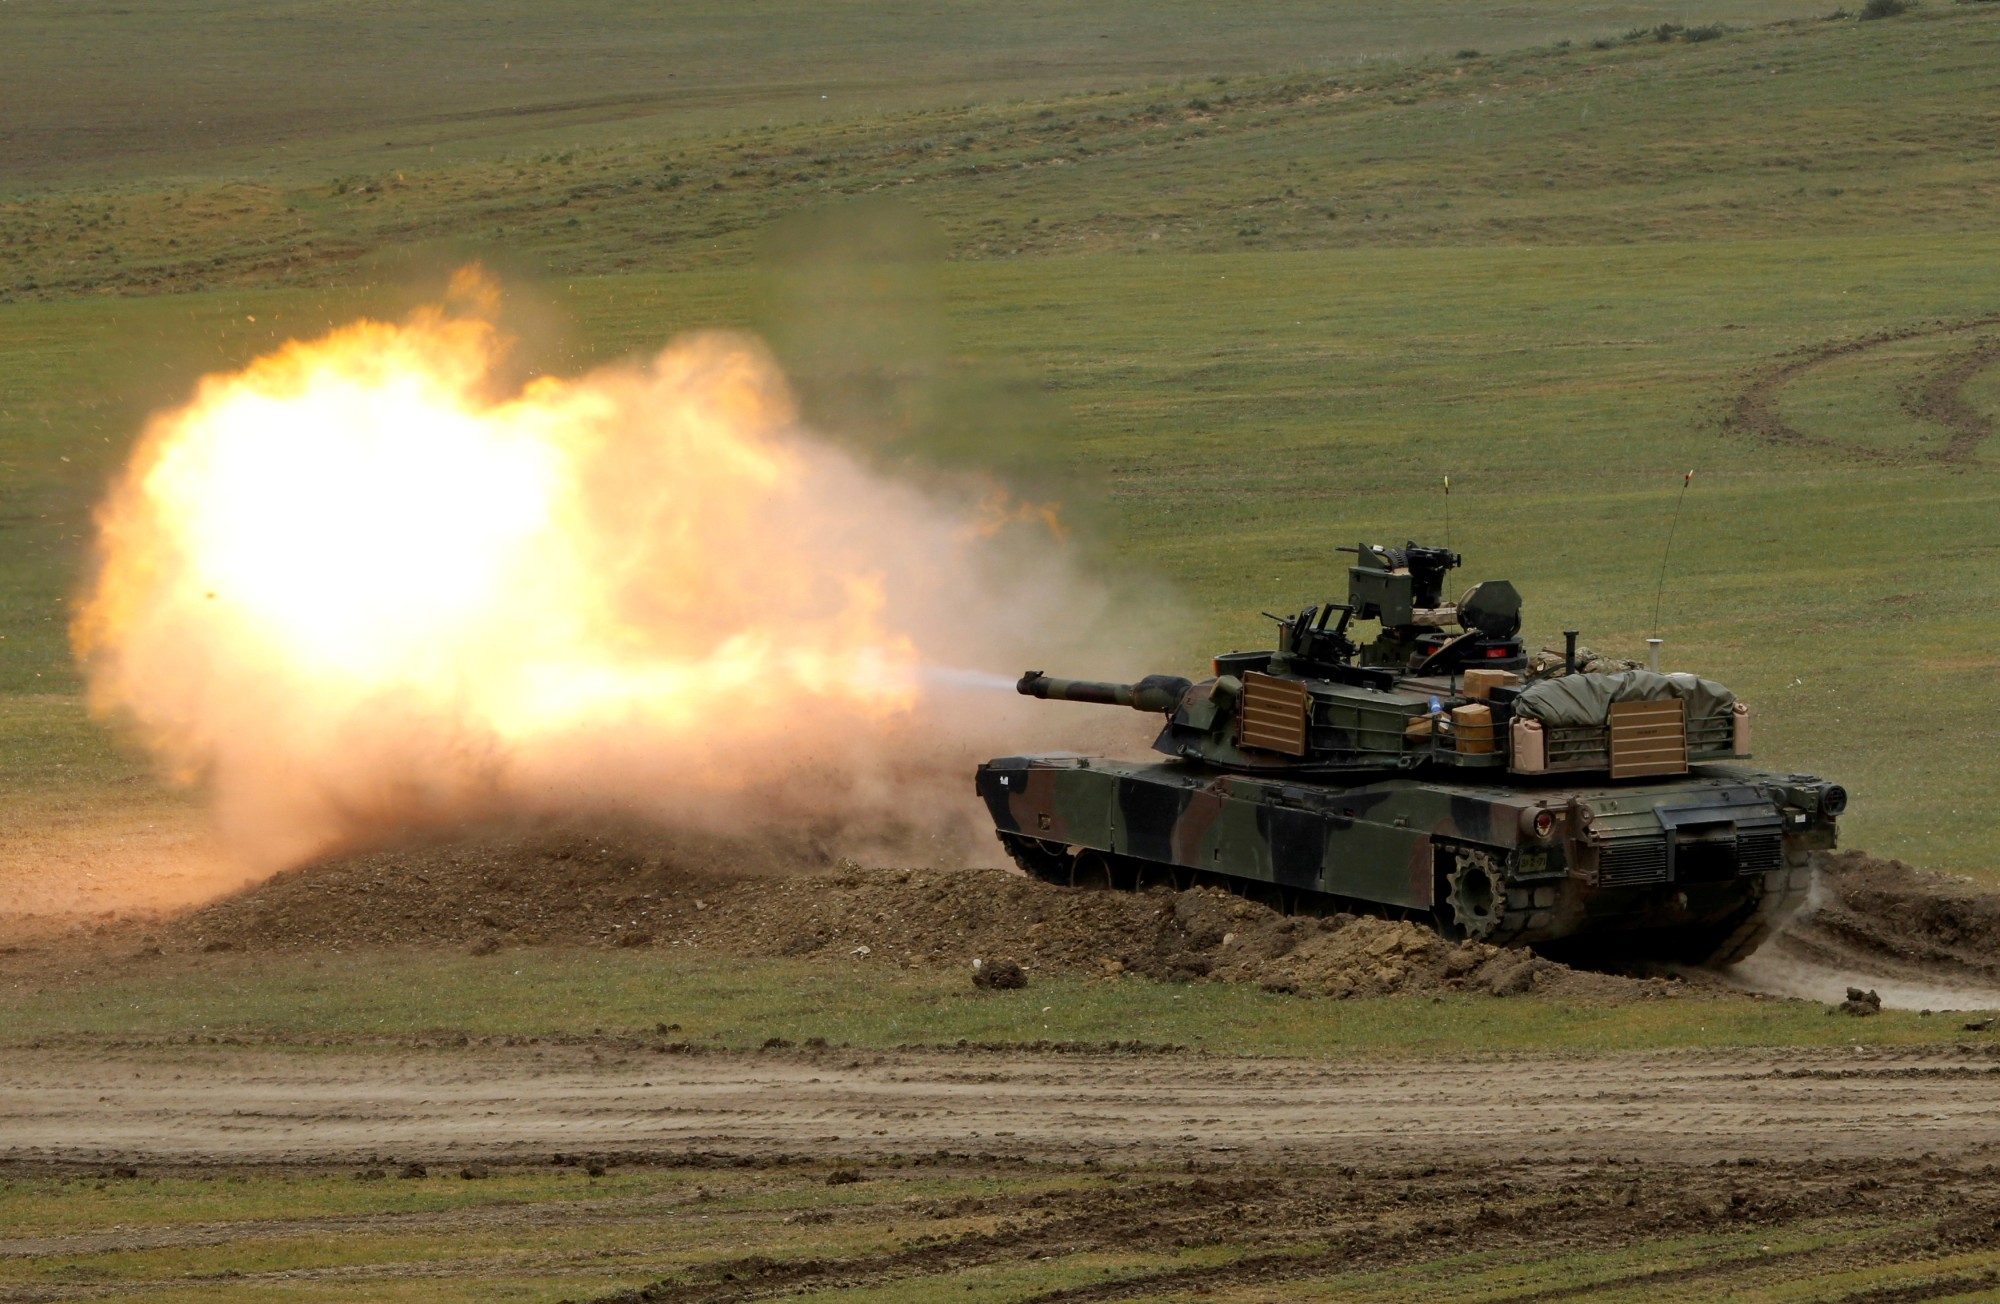 A U.S. M1A2 Abrams tank fires during the U.S. led joint military exercise 'Noble Partner 2016' near Vaziani, Georgia, in 2016. | REUTERS